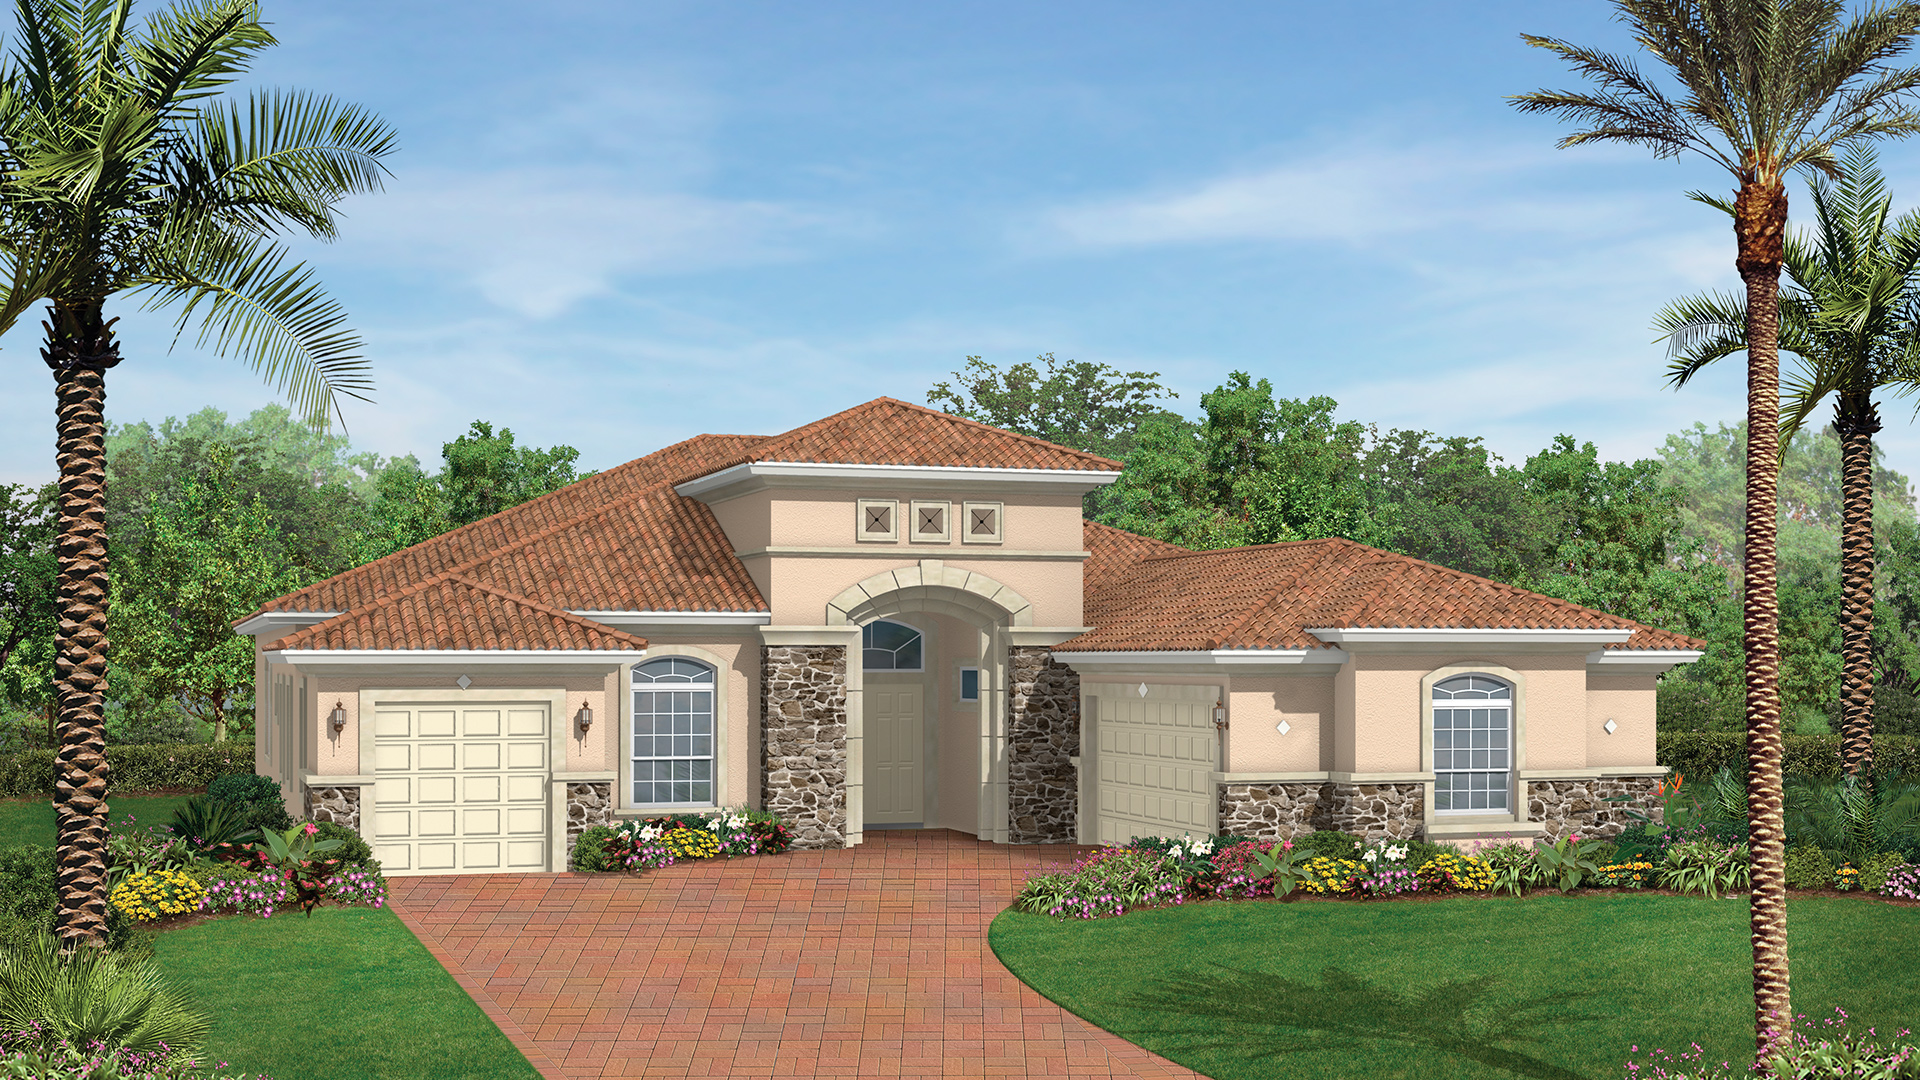 Jupiter country club the signature collection the for The country house collection